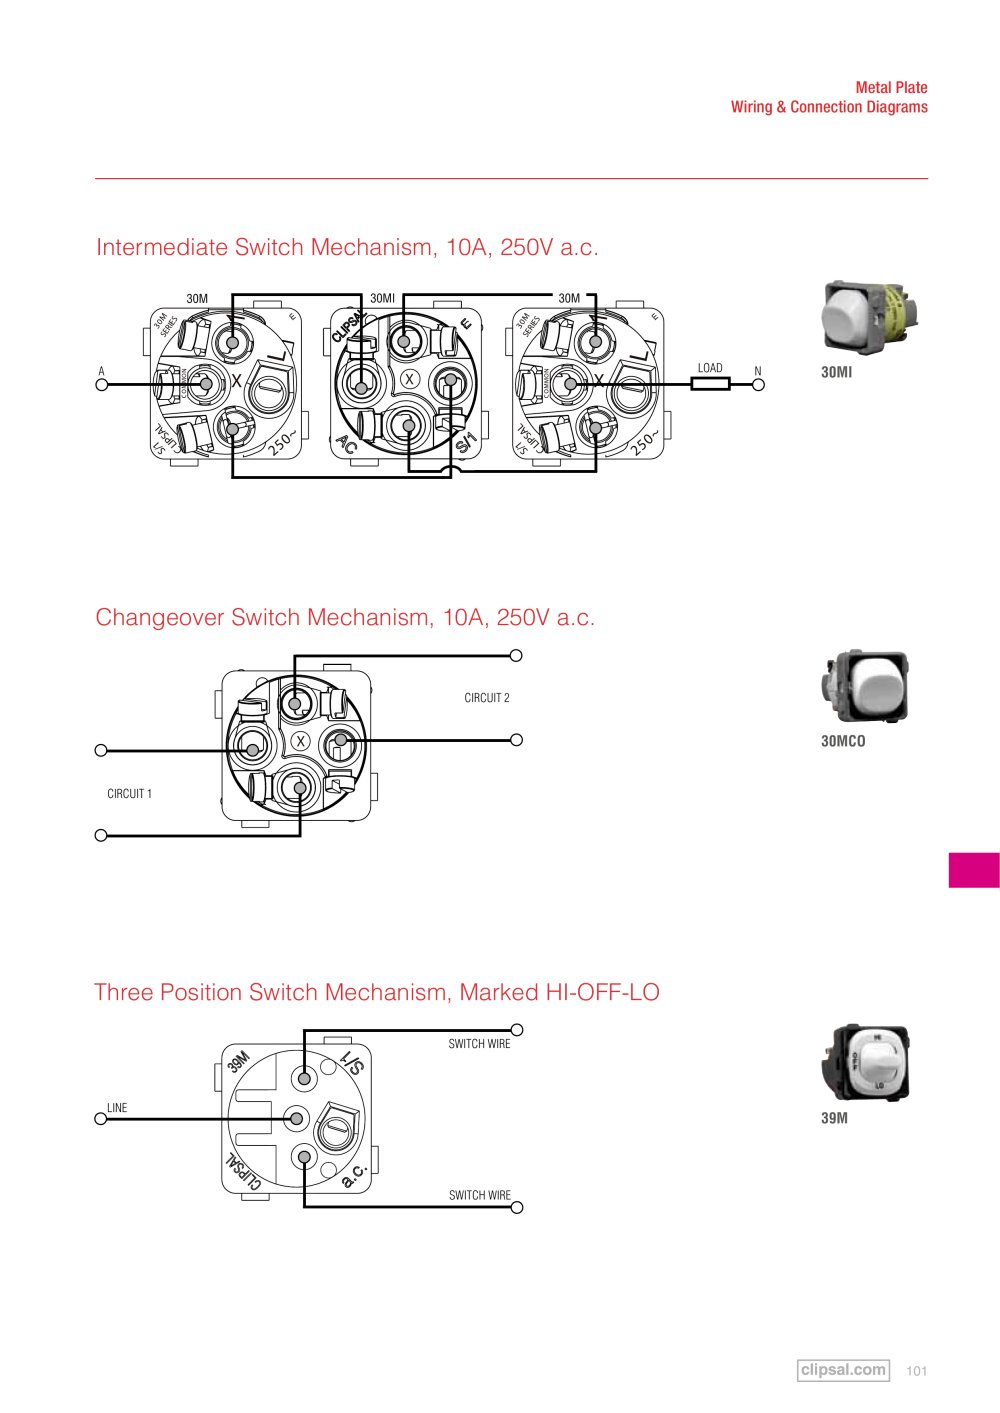 Clipsal Light Switch Wiring Diagram Australia 2 Lights To A